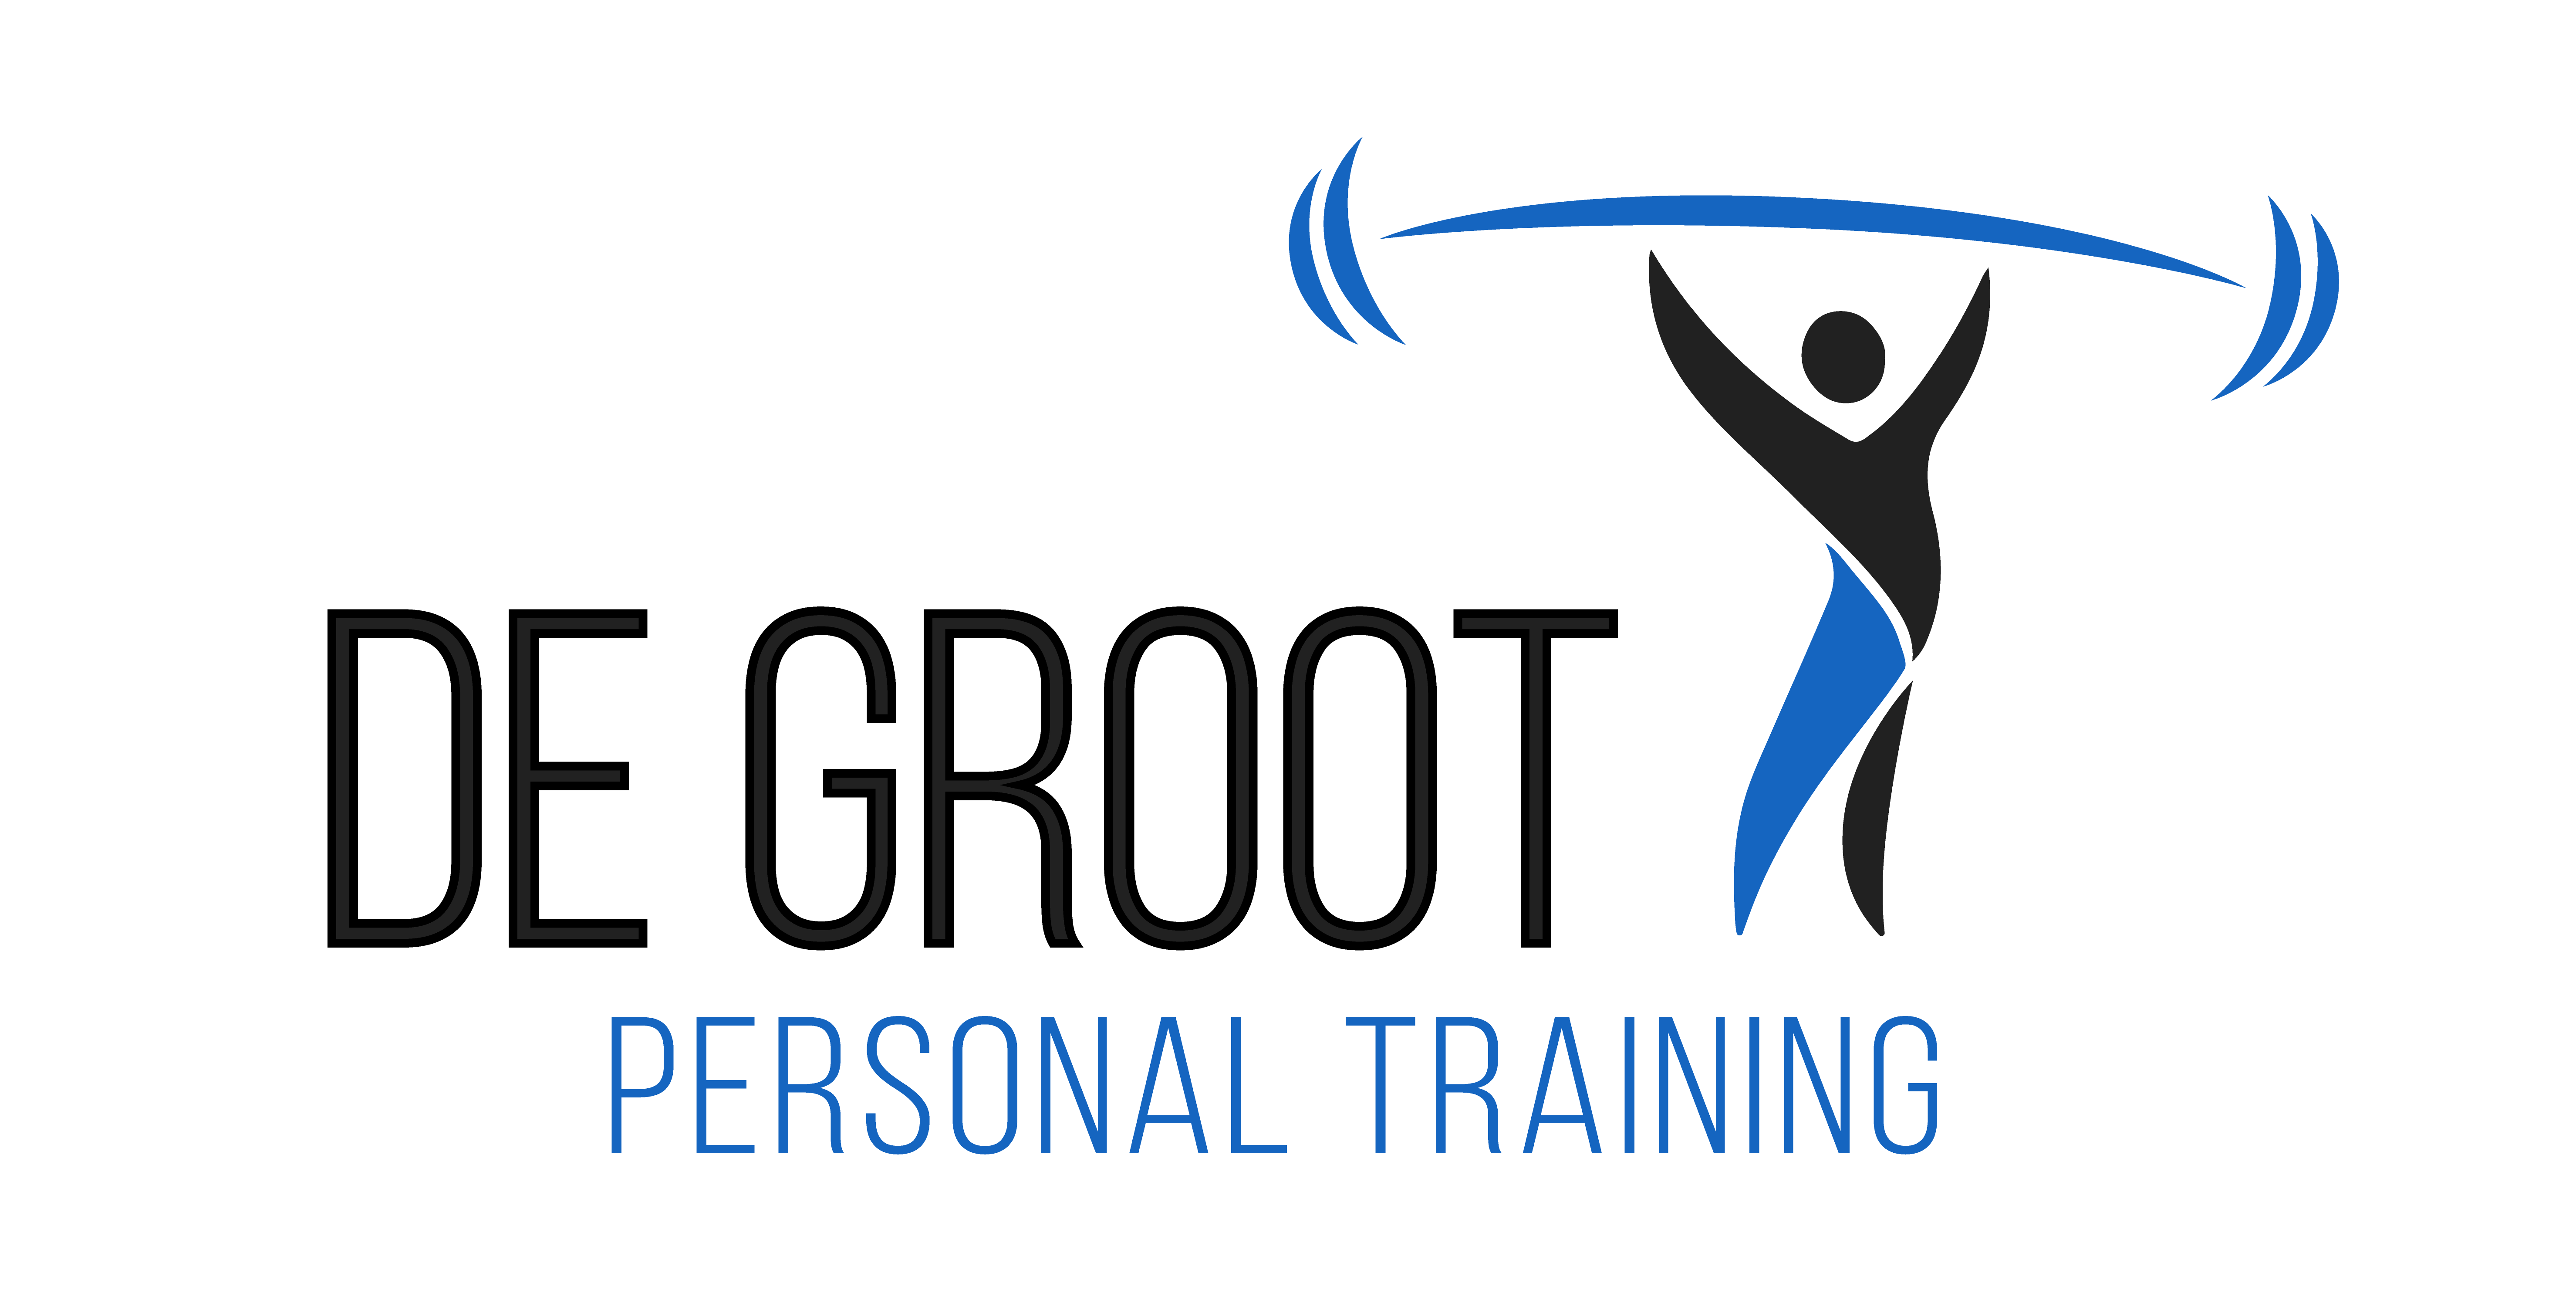 De Groot Personal training